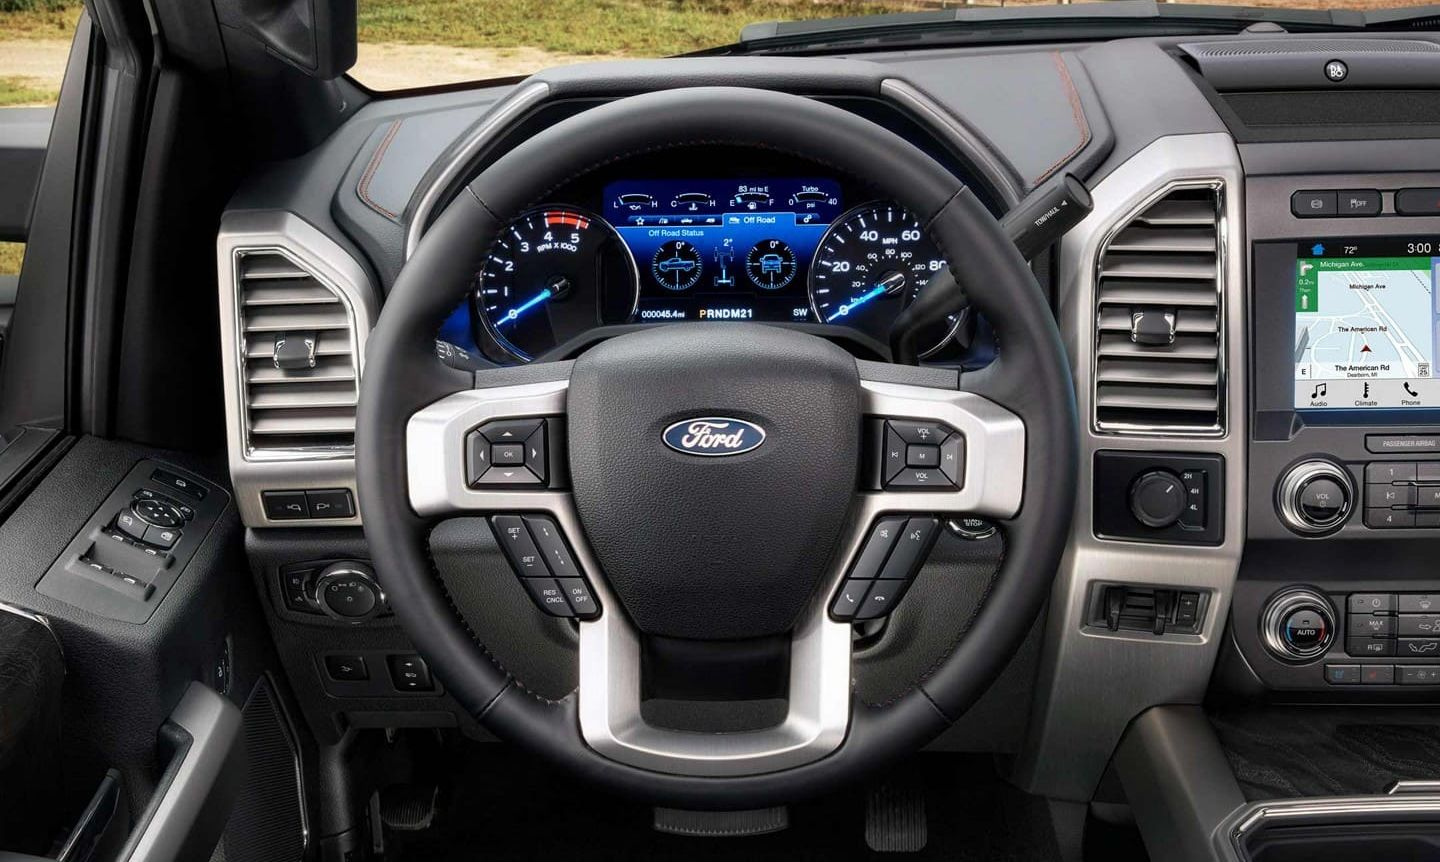 Steering Wheel of the 2019 Ford F-250 Super Duty